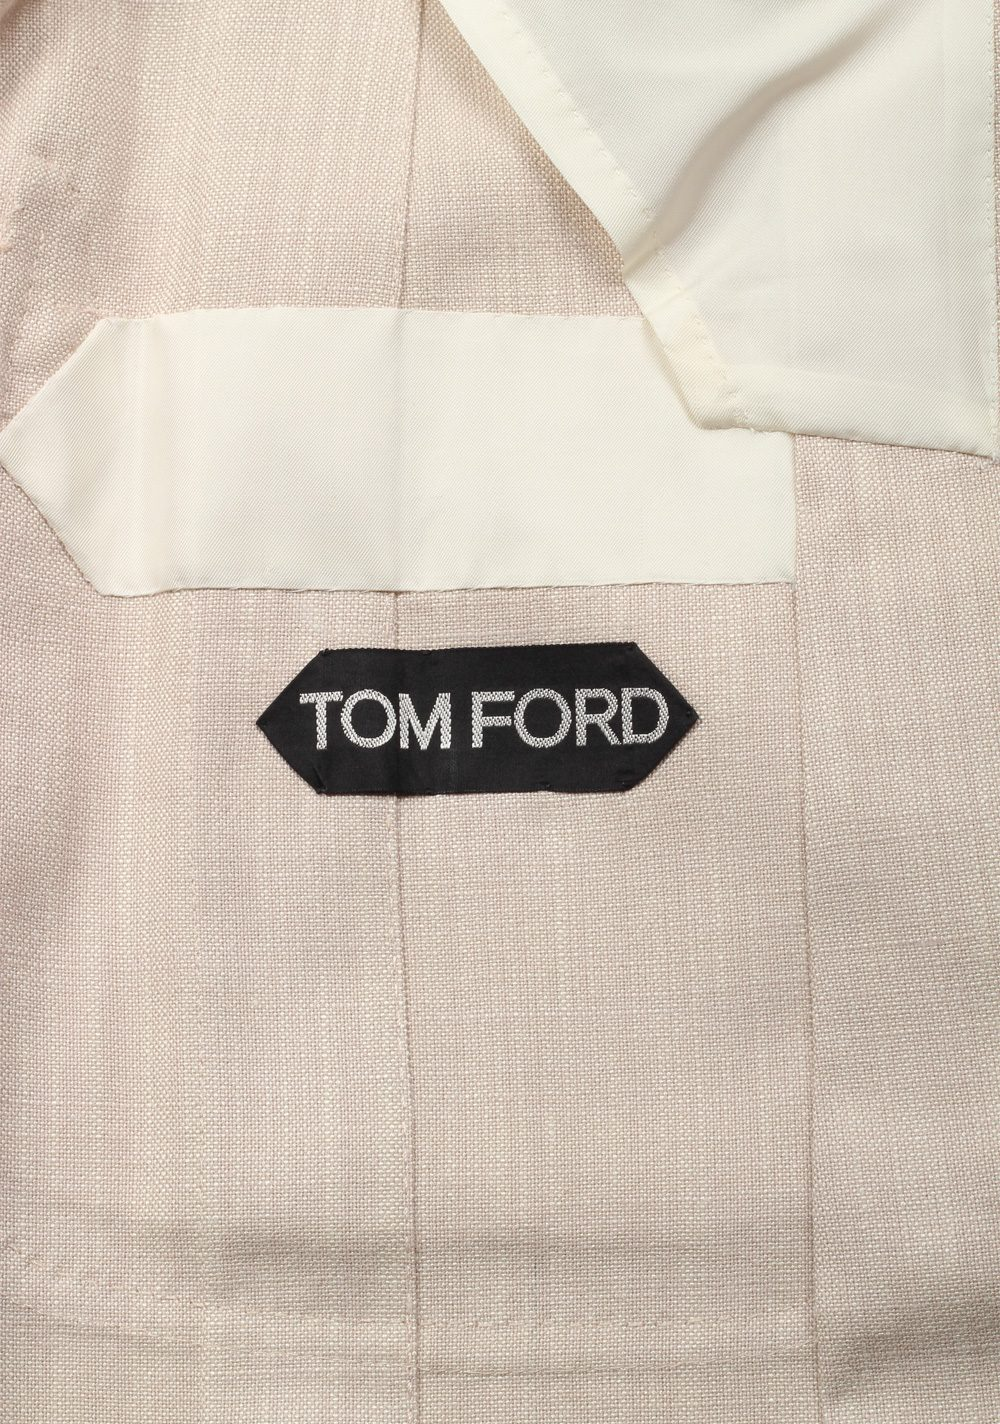 TOM FORD Shelton Beige  Size 48 / 38R U.S. In Silk | Costume Limité